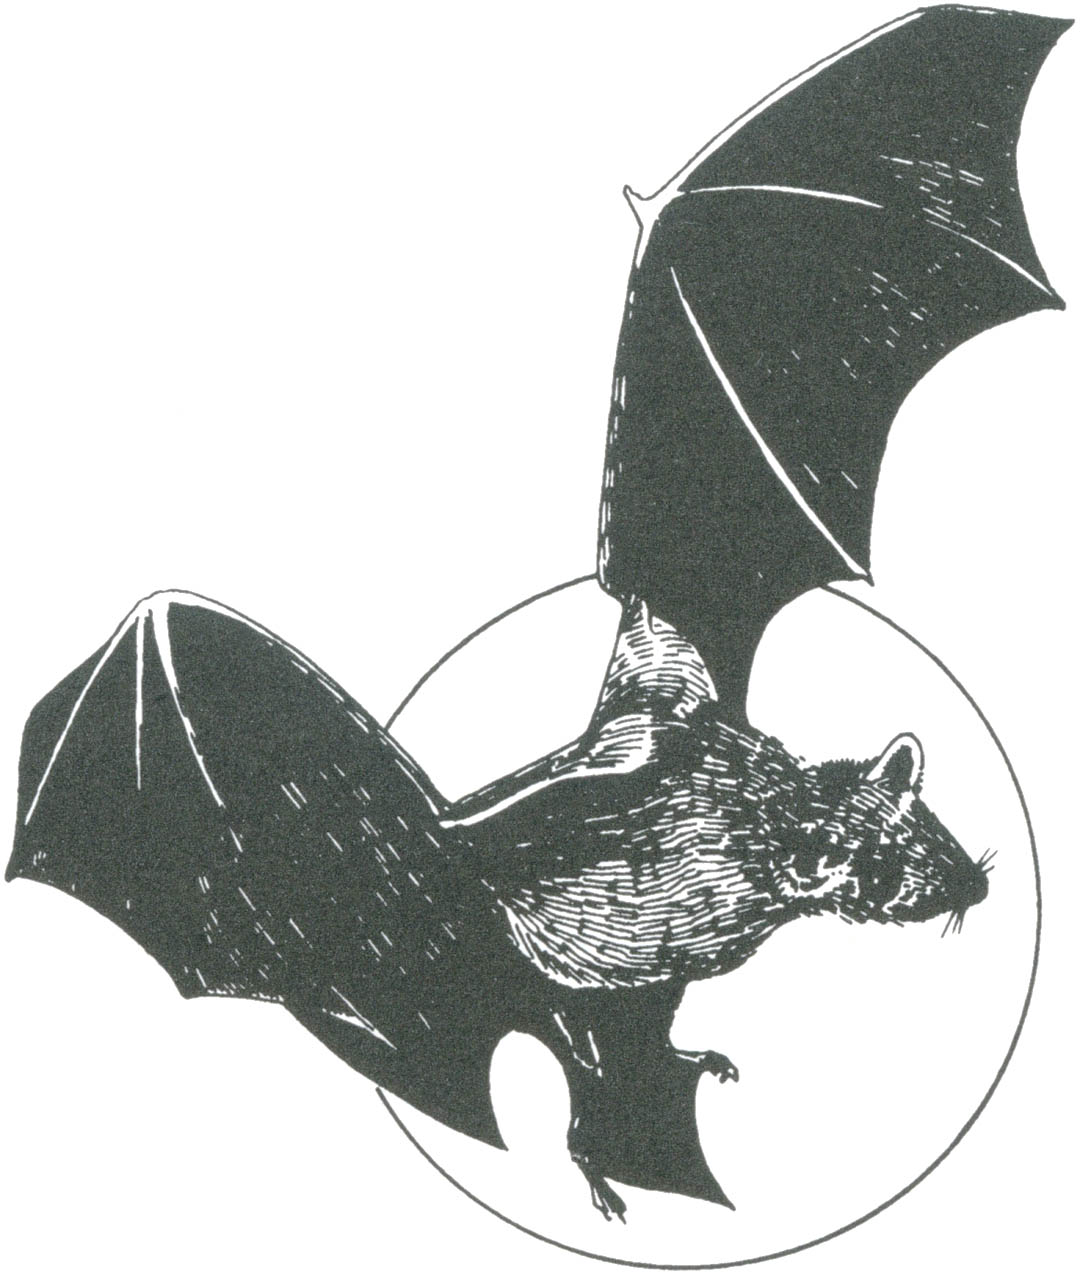 pacific horticulture society bats